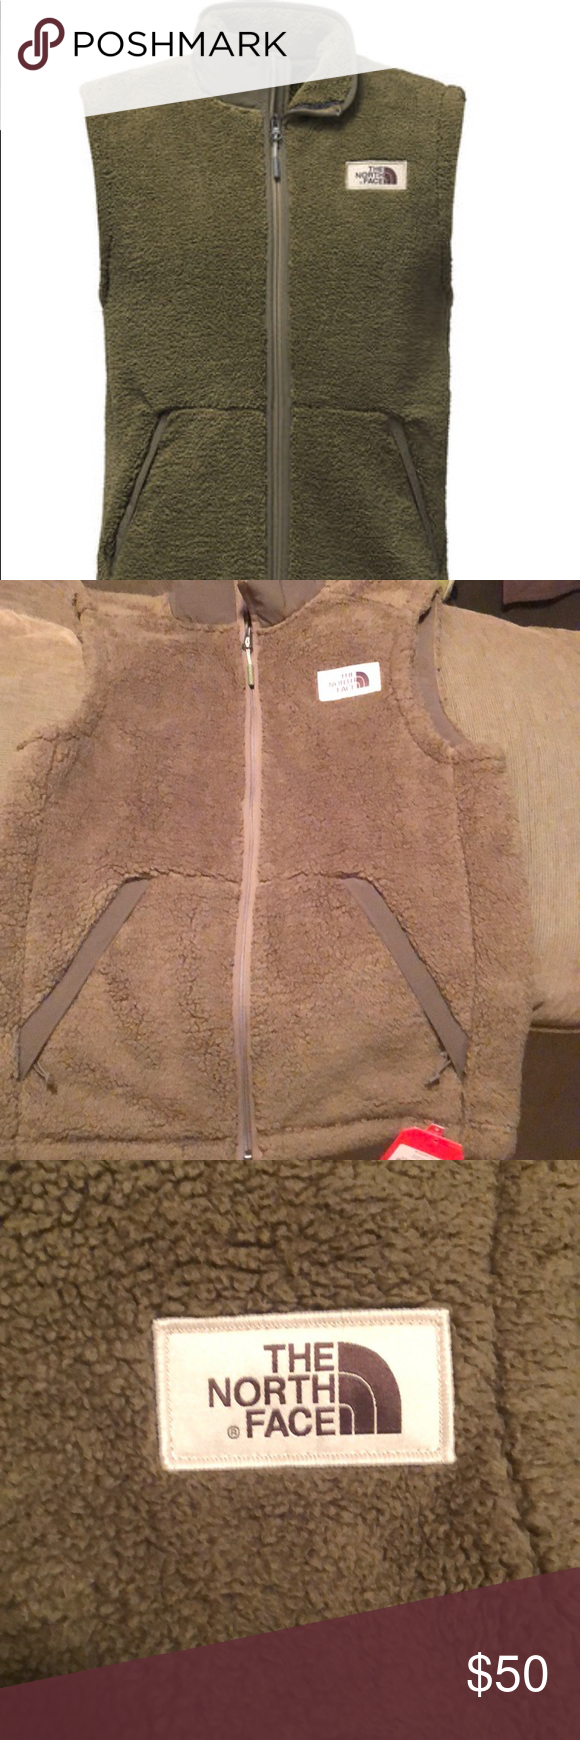 995c236ae NWT North Face olive green vest small unisex NWT North Face olive ...